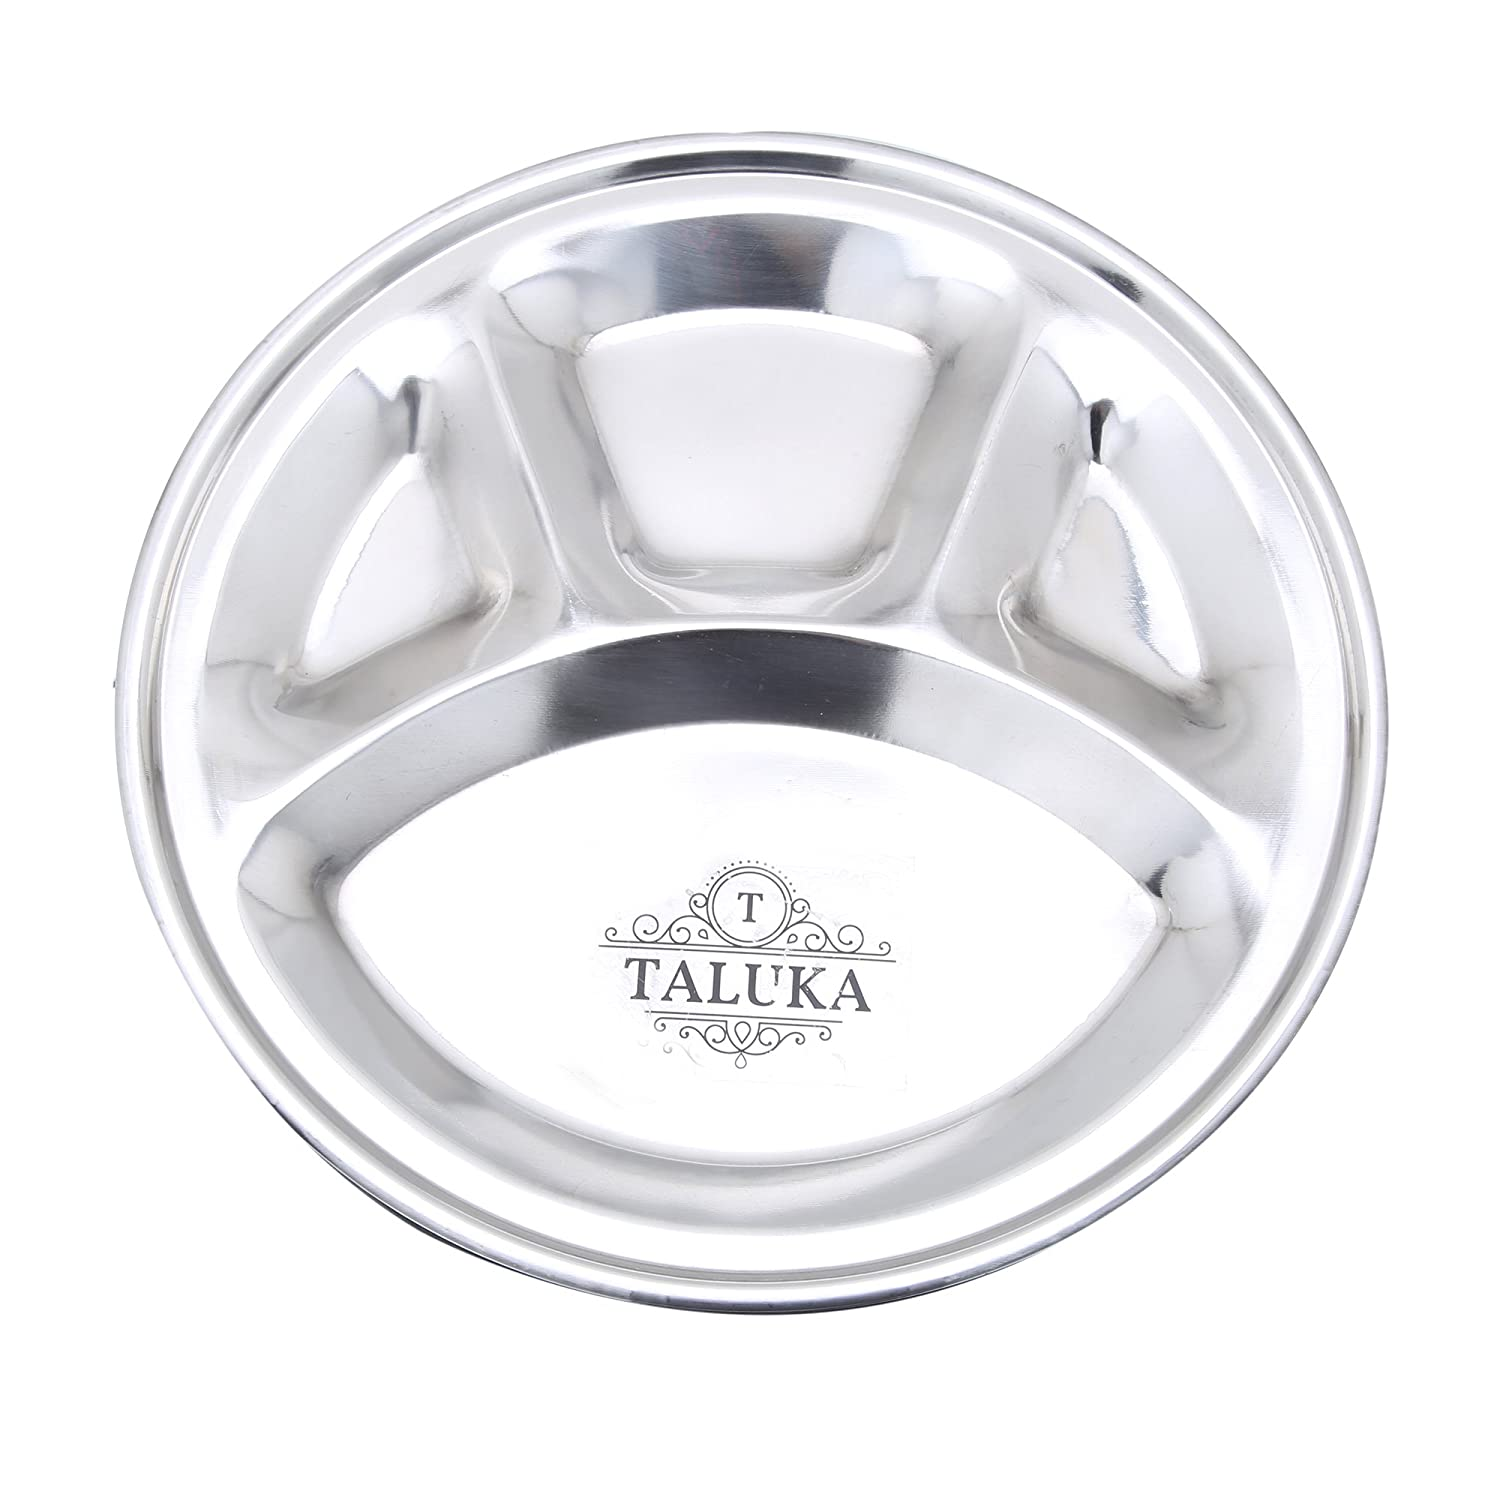 Taluka (10.5 x 0.6 Inches Approx) Stainless Steel Dinner Plate Food Plate for Home Use Hotel Restaurant